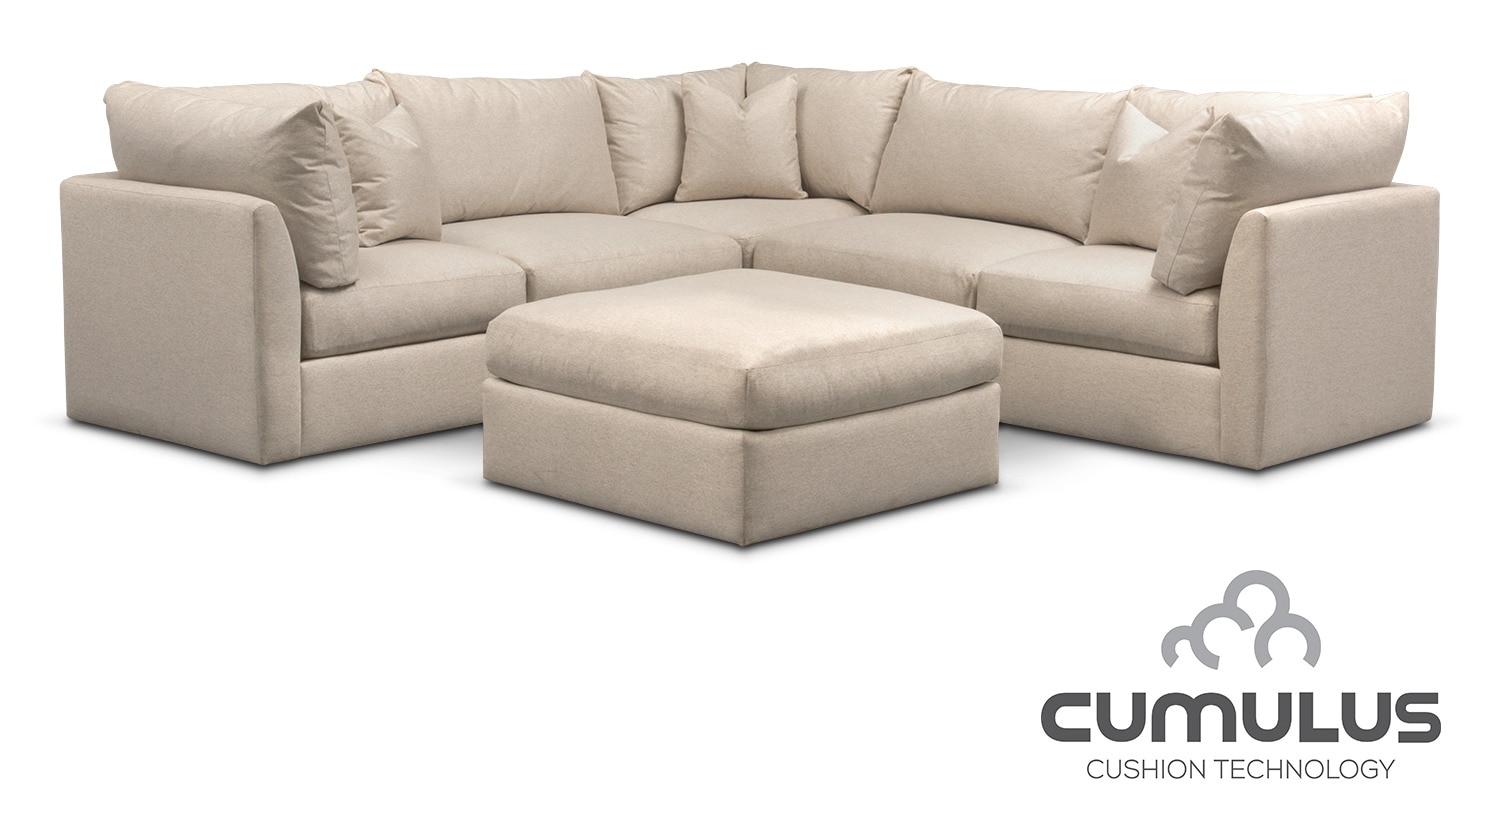 Trenton Cumulus 5-Piece Sectional and Ottoman Set - Linen  sc 1 st  Value City Furniture : cordoba 2 piece sectional - Sectionals, Sofas & Couches